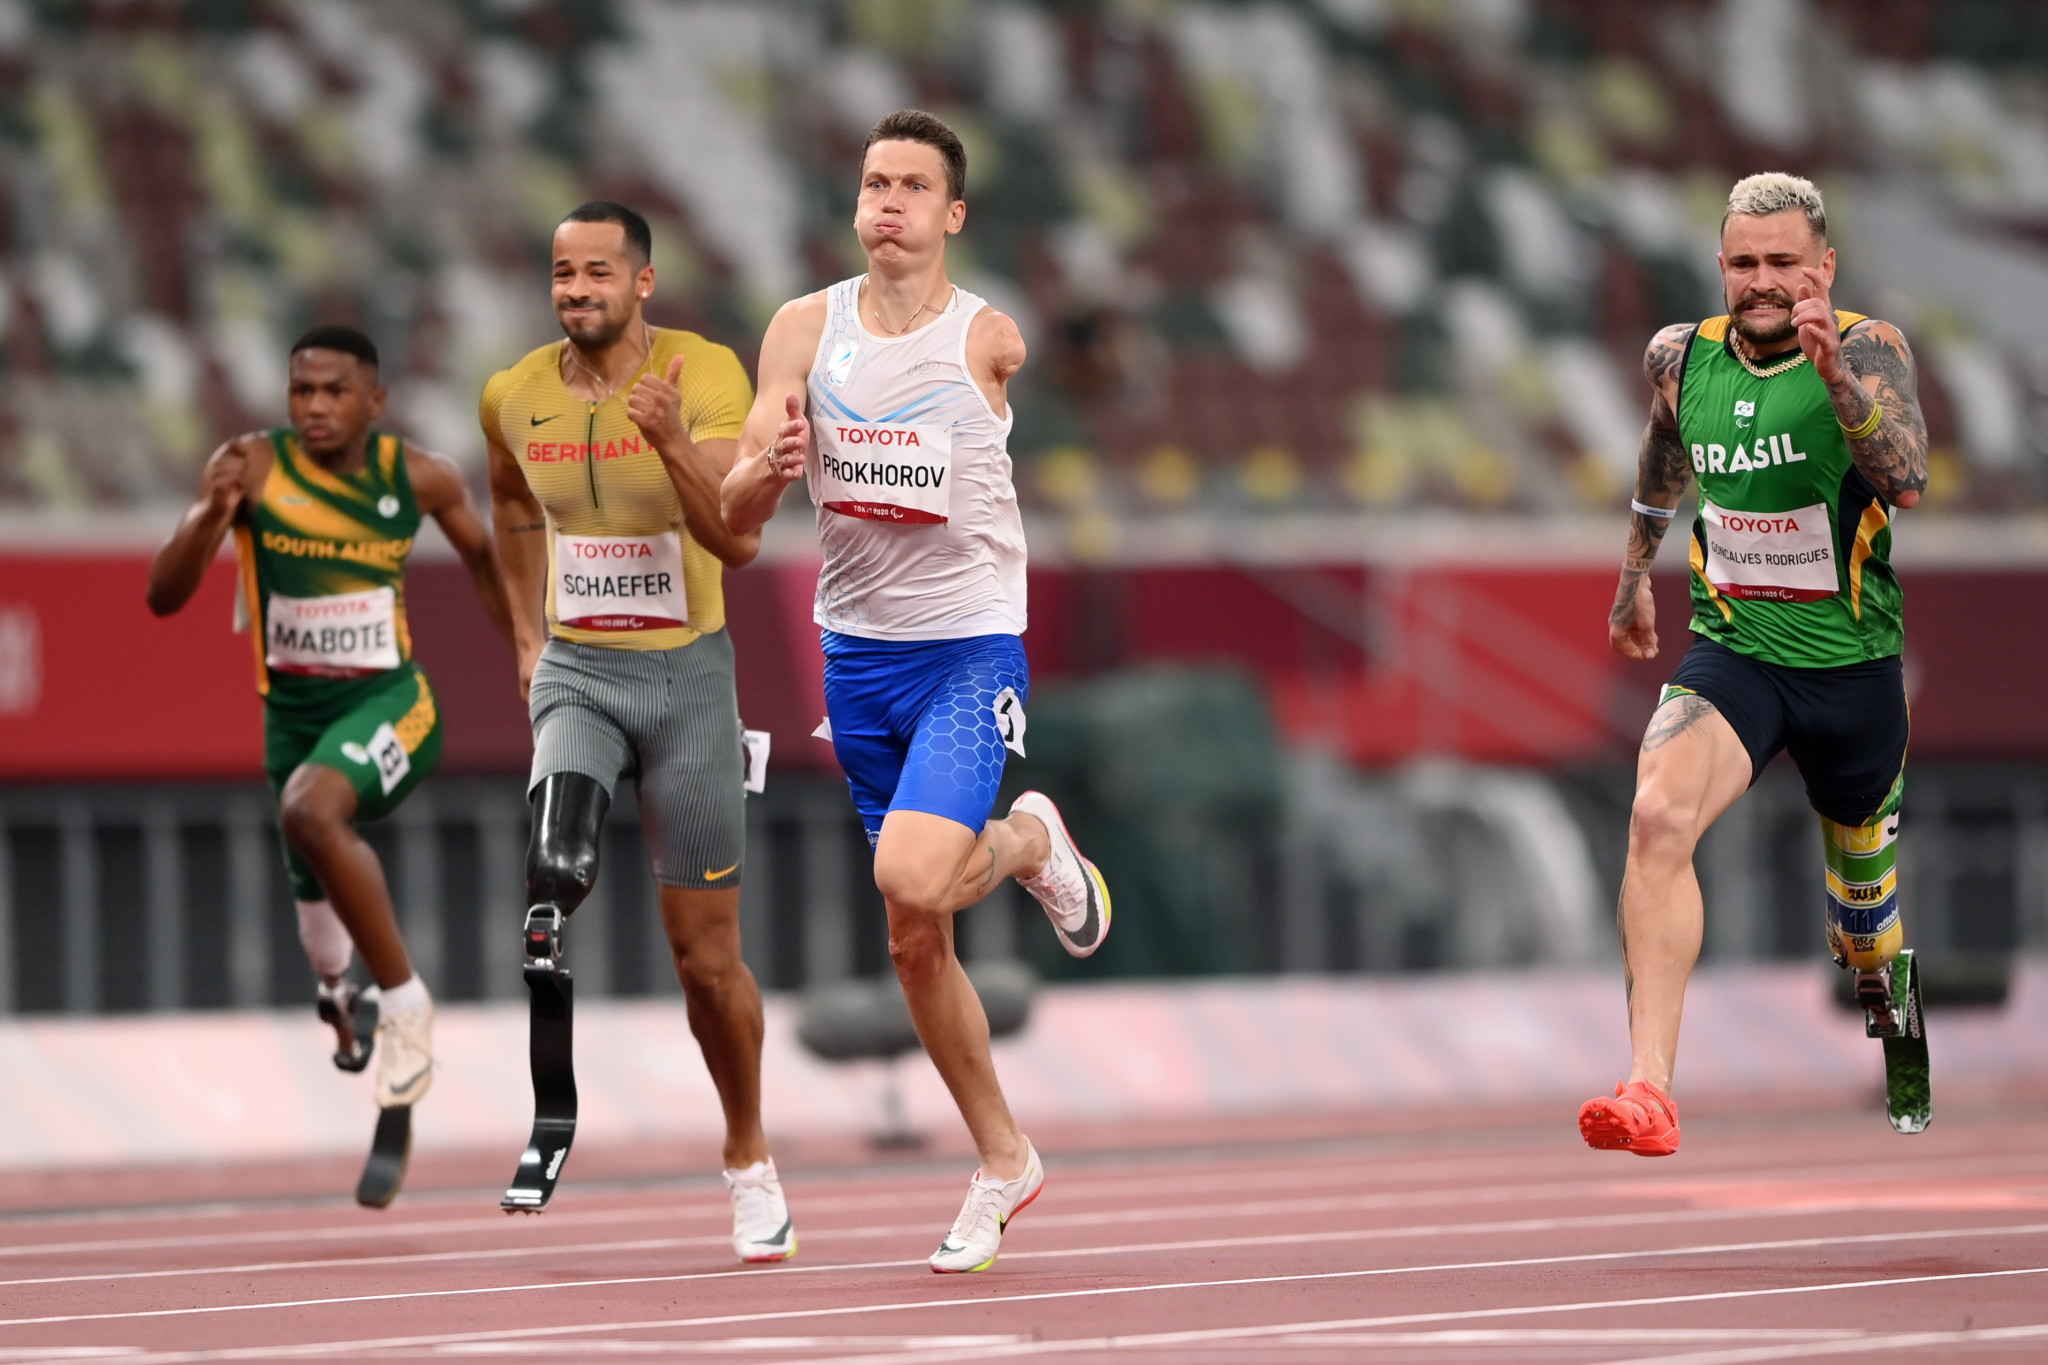 Anton Prokhorov, centre, had to hold off a late surge by Vinicius Goncalves Rodrigues, right, eventually winning gold by 0.01 seconds ©Getty Images